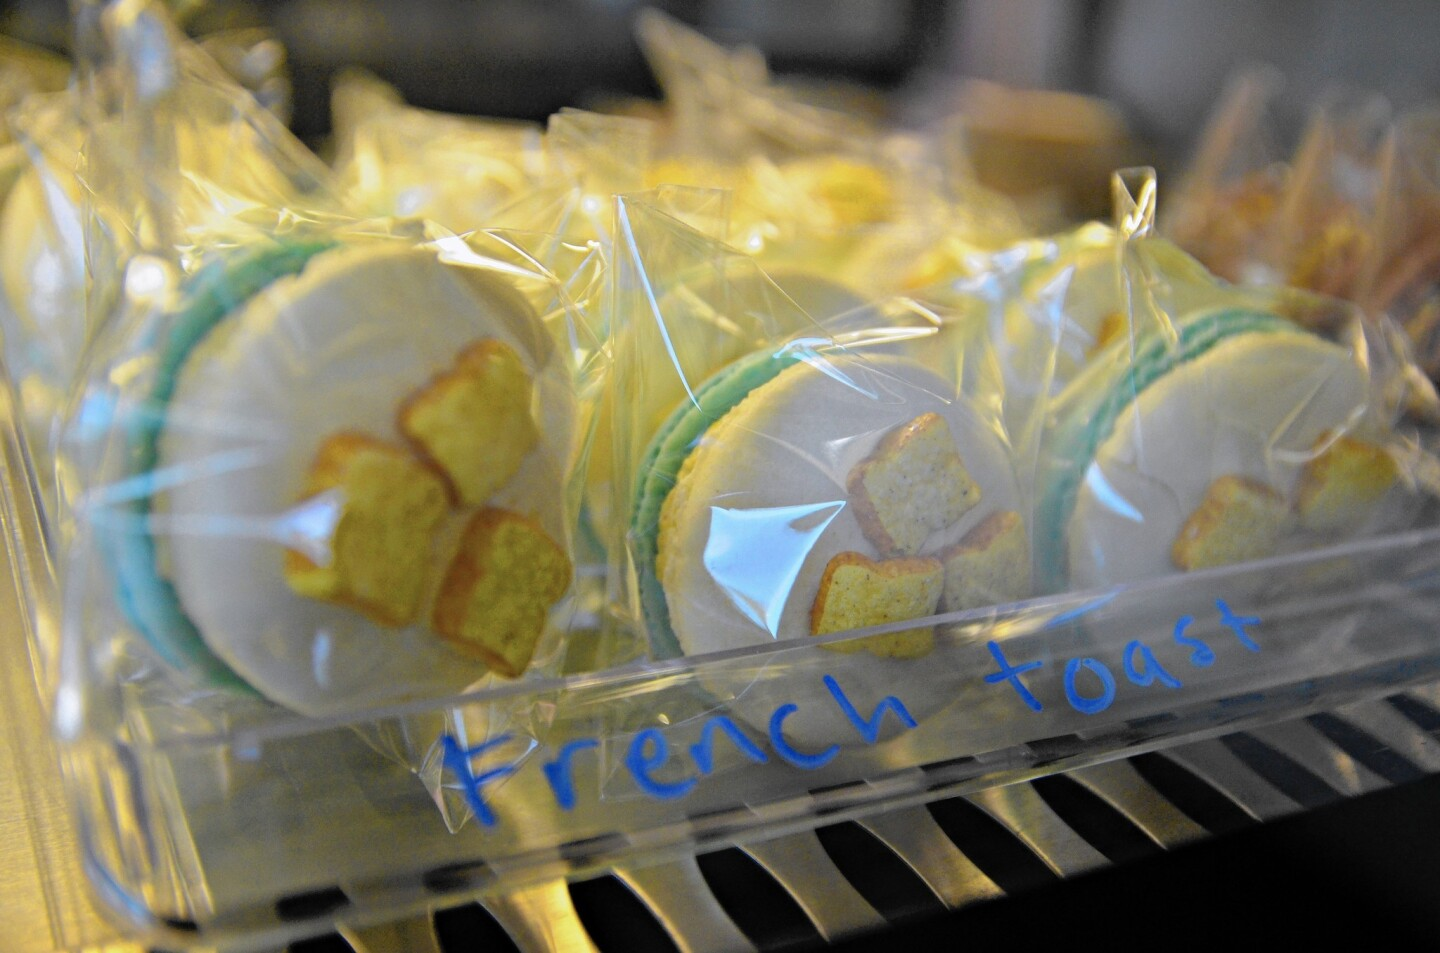 Honey & Butter, located at The Lab in Costa Mesa, sells hundreds of macaron cookies in various flavors a day.